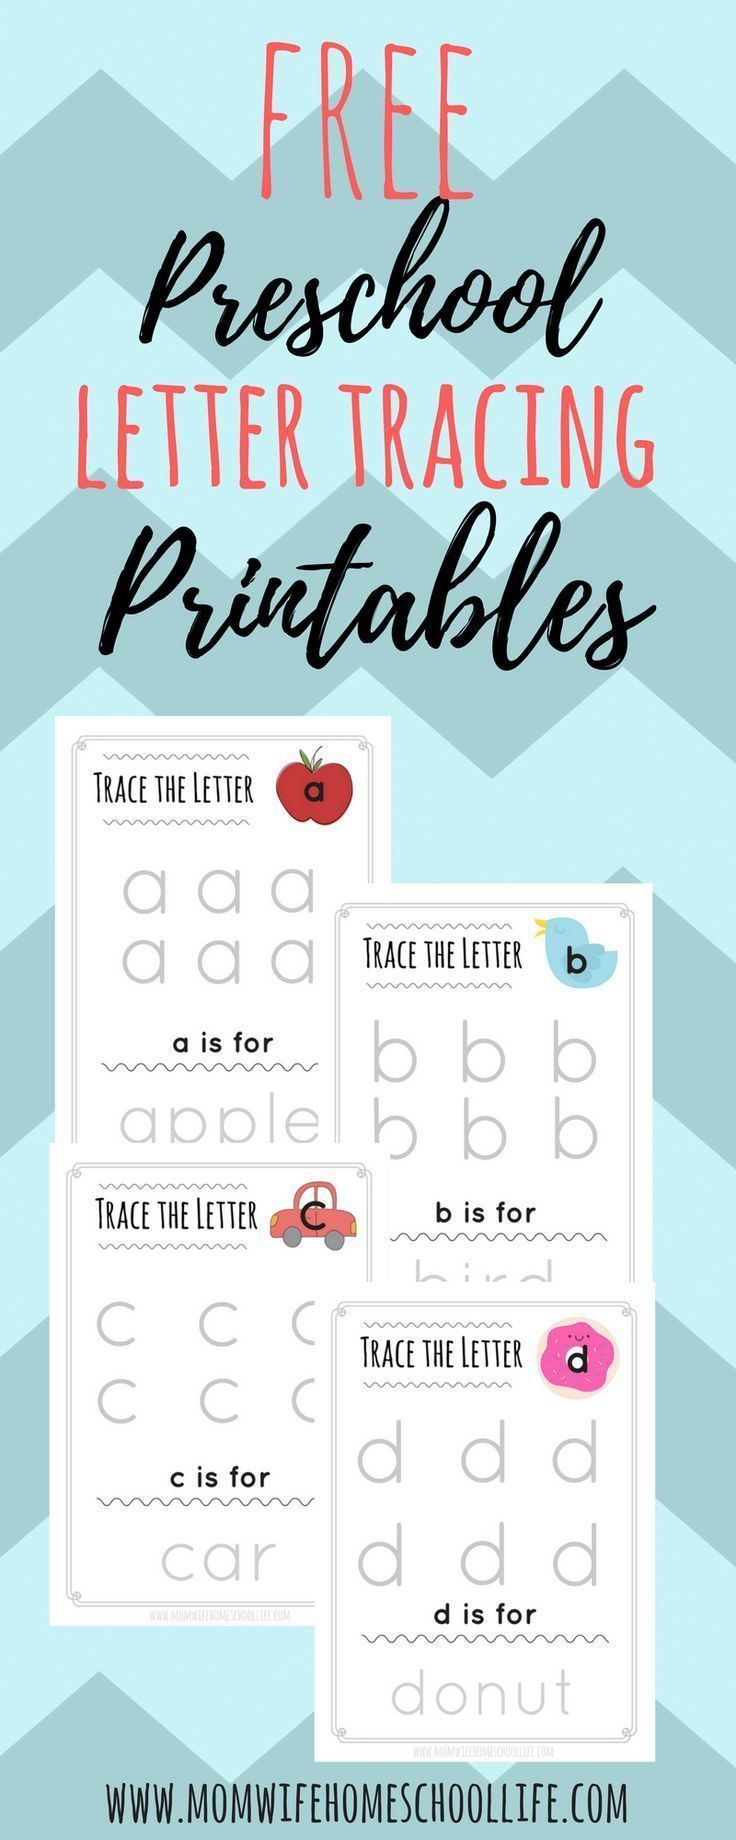 Trace the Letter: Lowercase Alphabet Tracing | Charlotte Mason ...